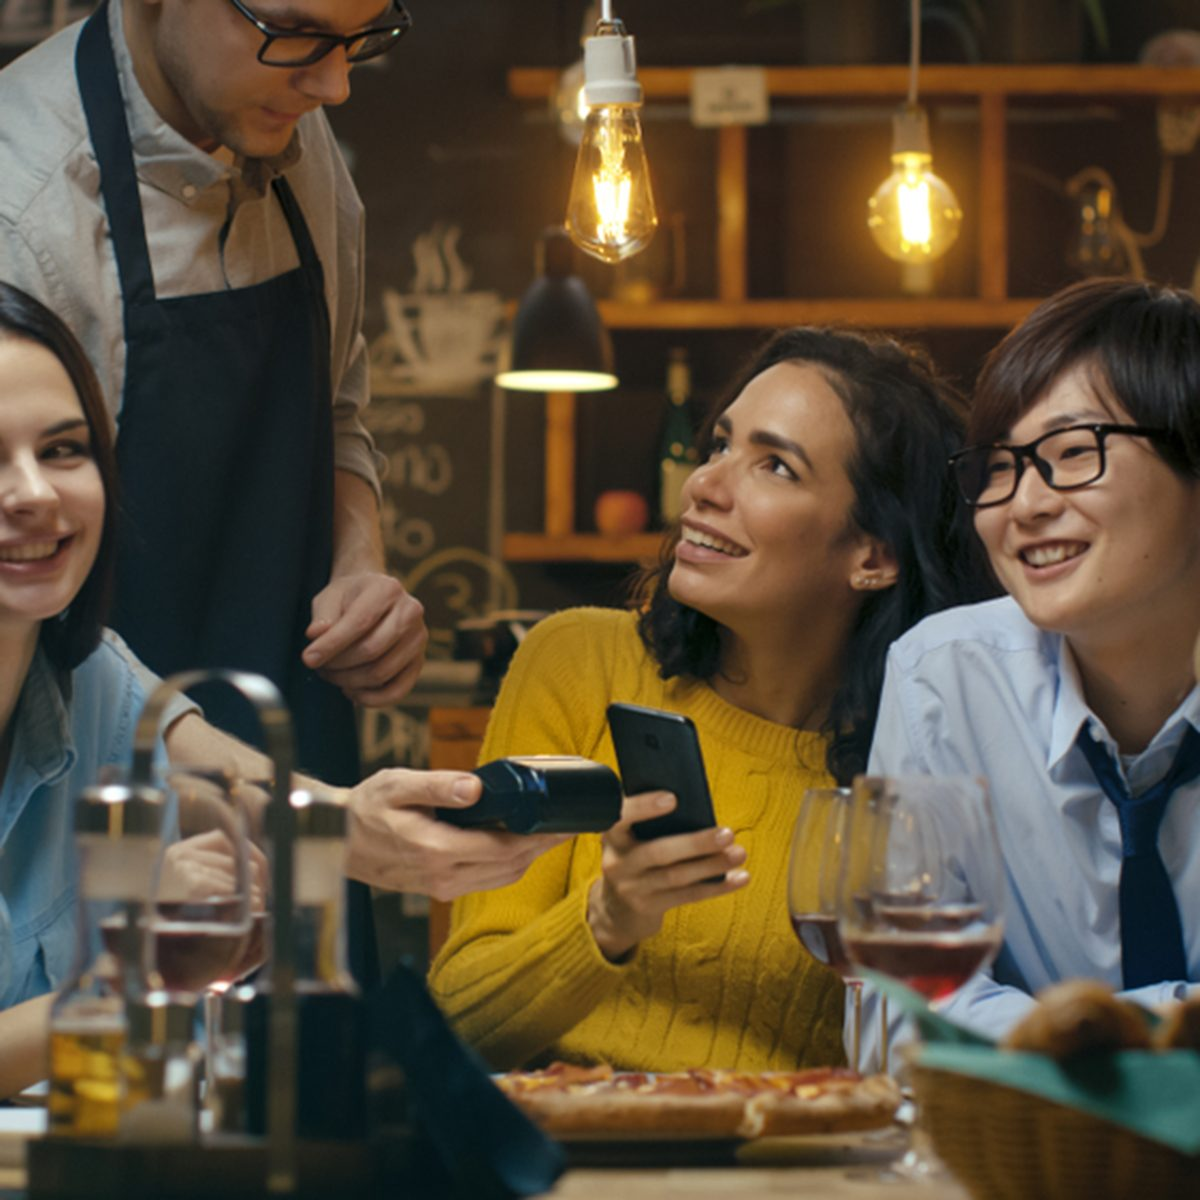 In the Bar Waiter Holds Credit Card Payment Machine and Beautiful Woman Pays for Her Order with Contactless Mobile Phone Payments System.